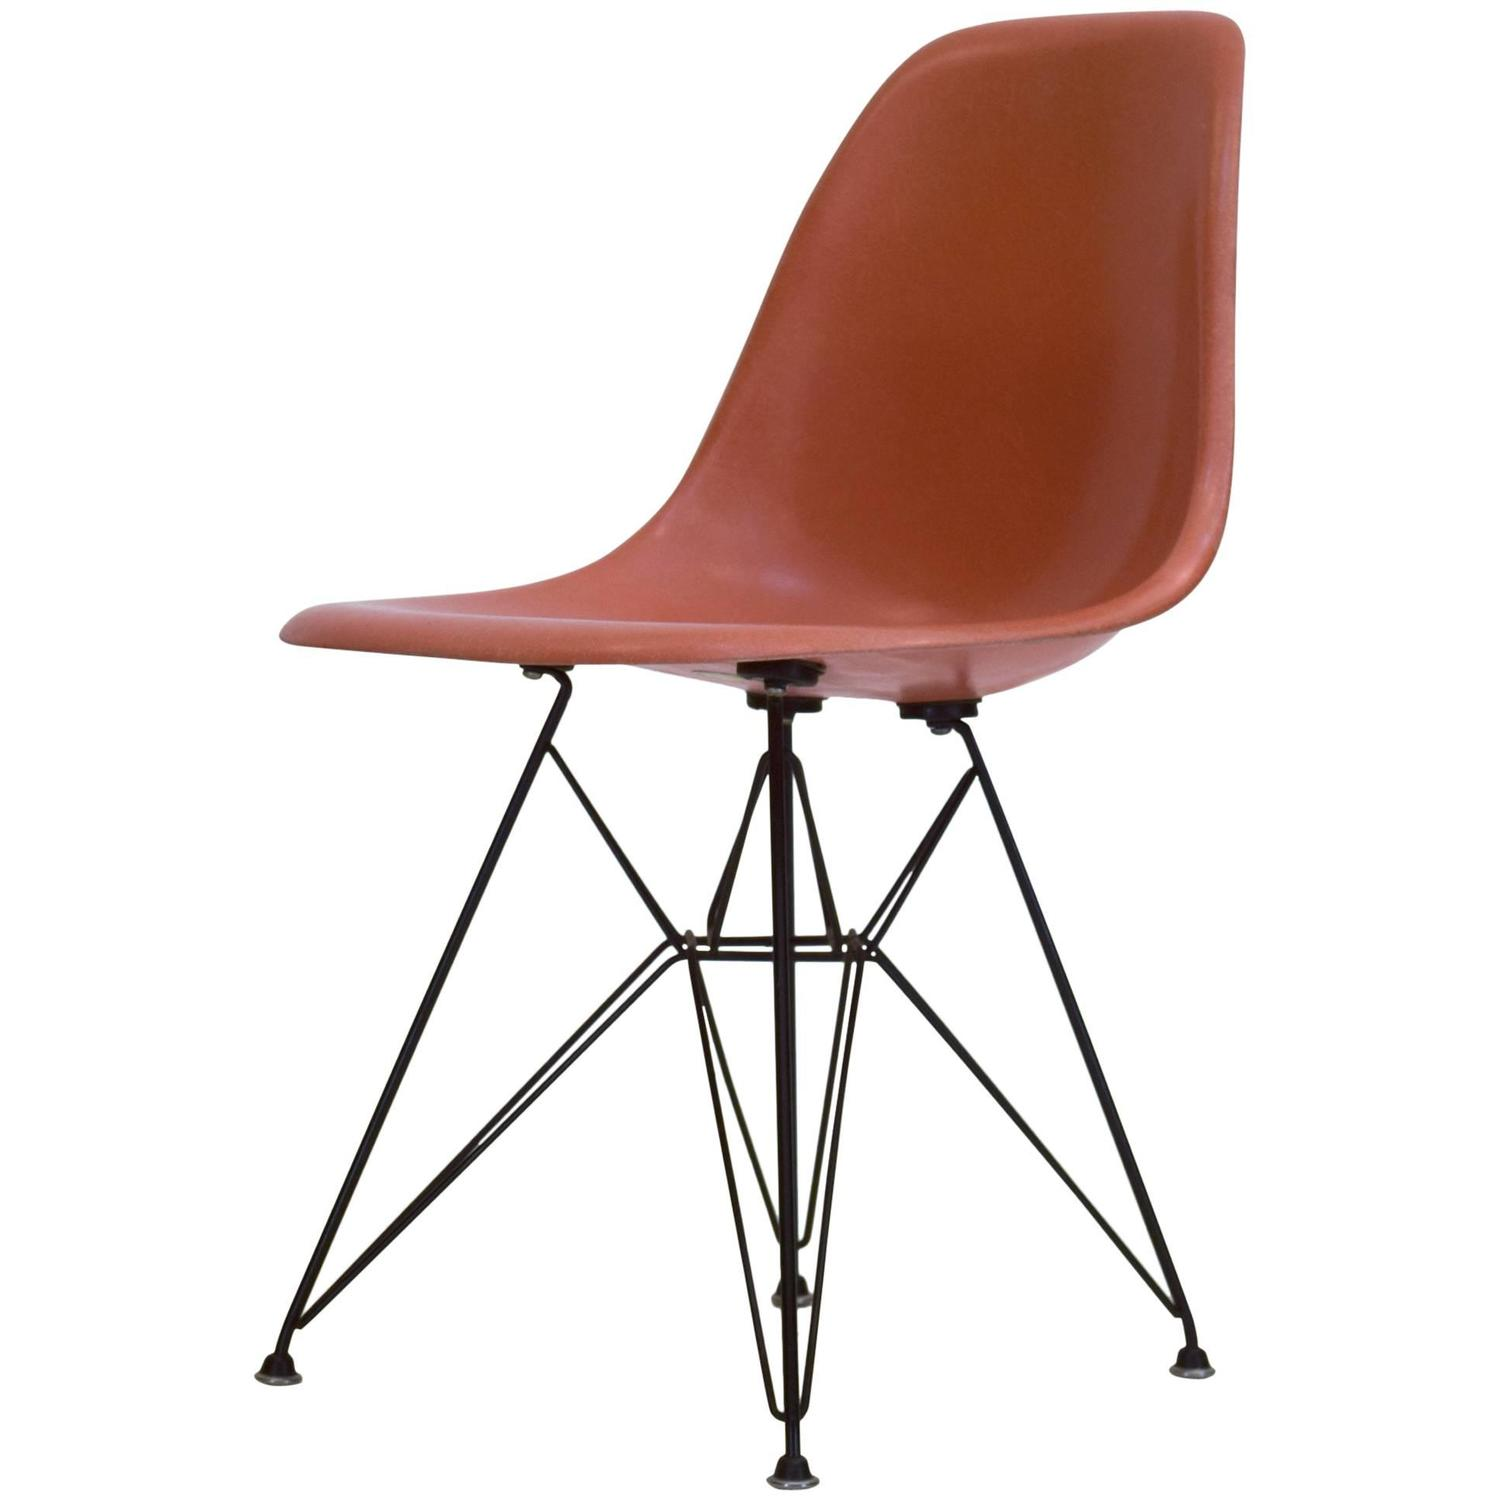 Original Eames Chair Eames Shell Chair On Original Eiffel Base 1950s For Sale